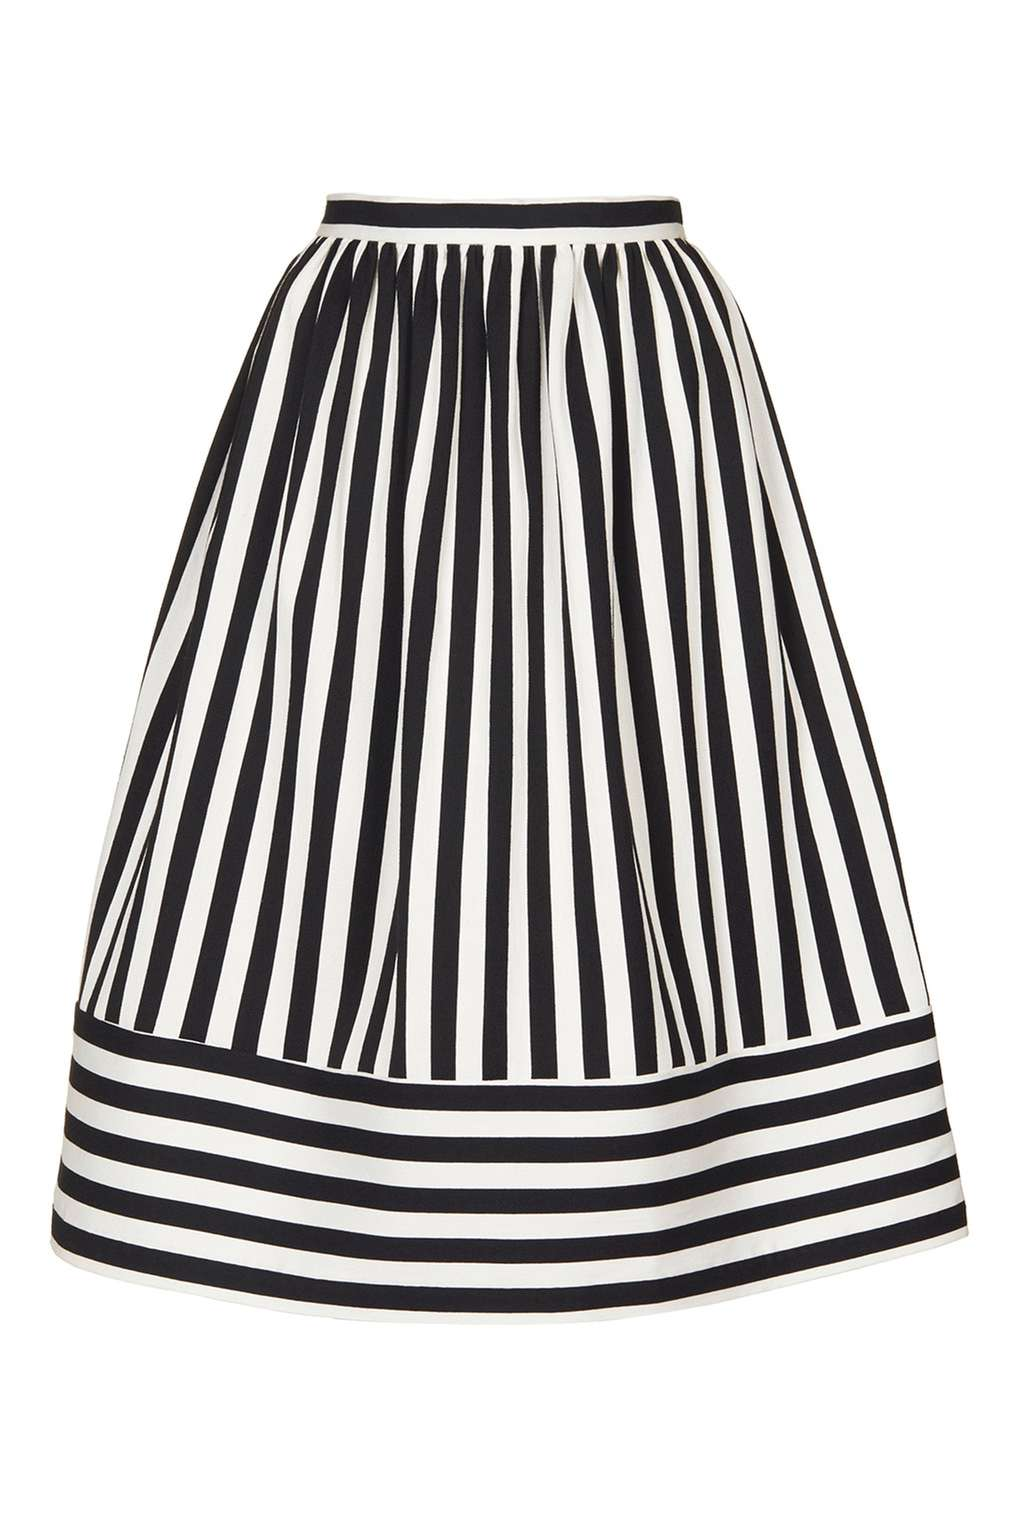 Cutabout Stripe Midi Skirt £50.00 Click to visit Topshop